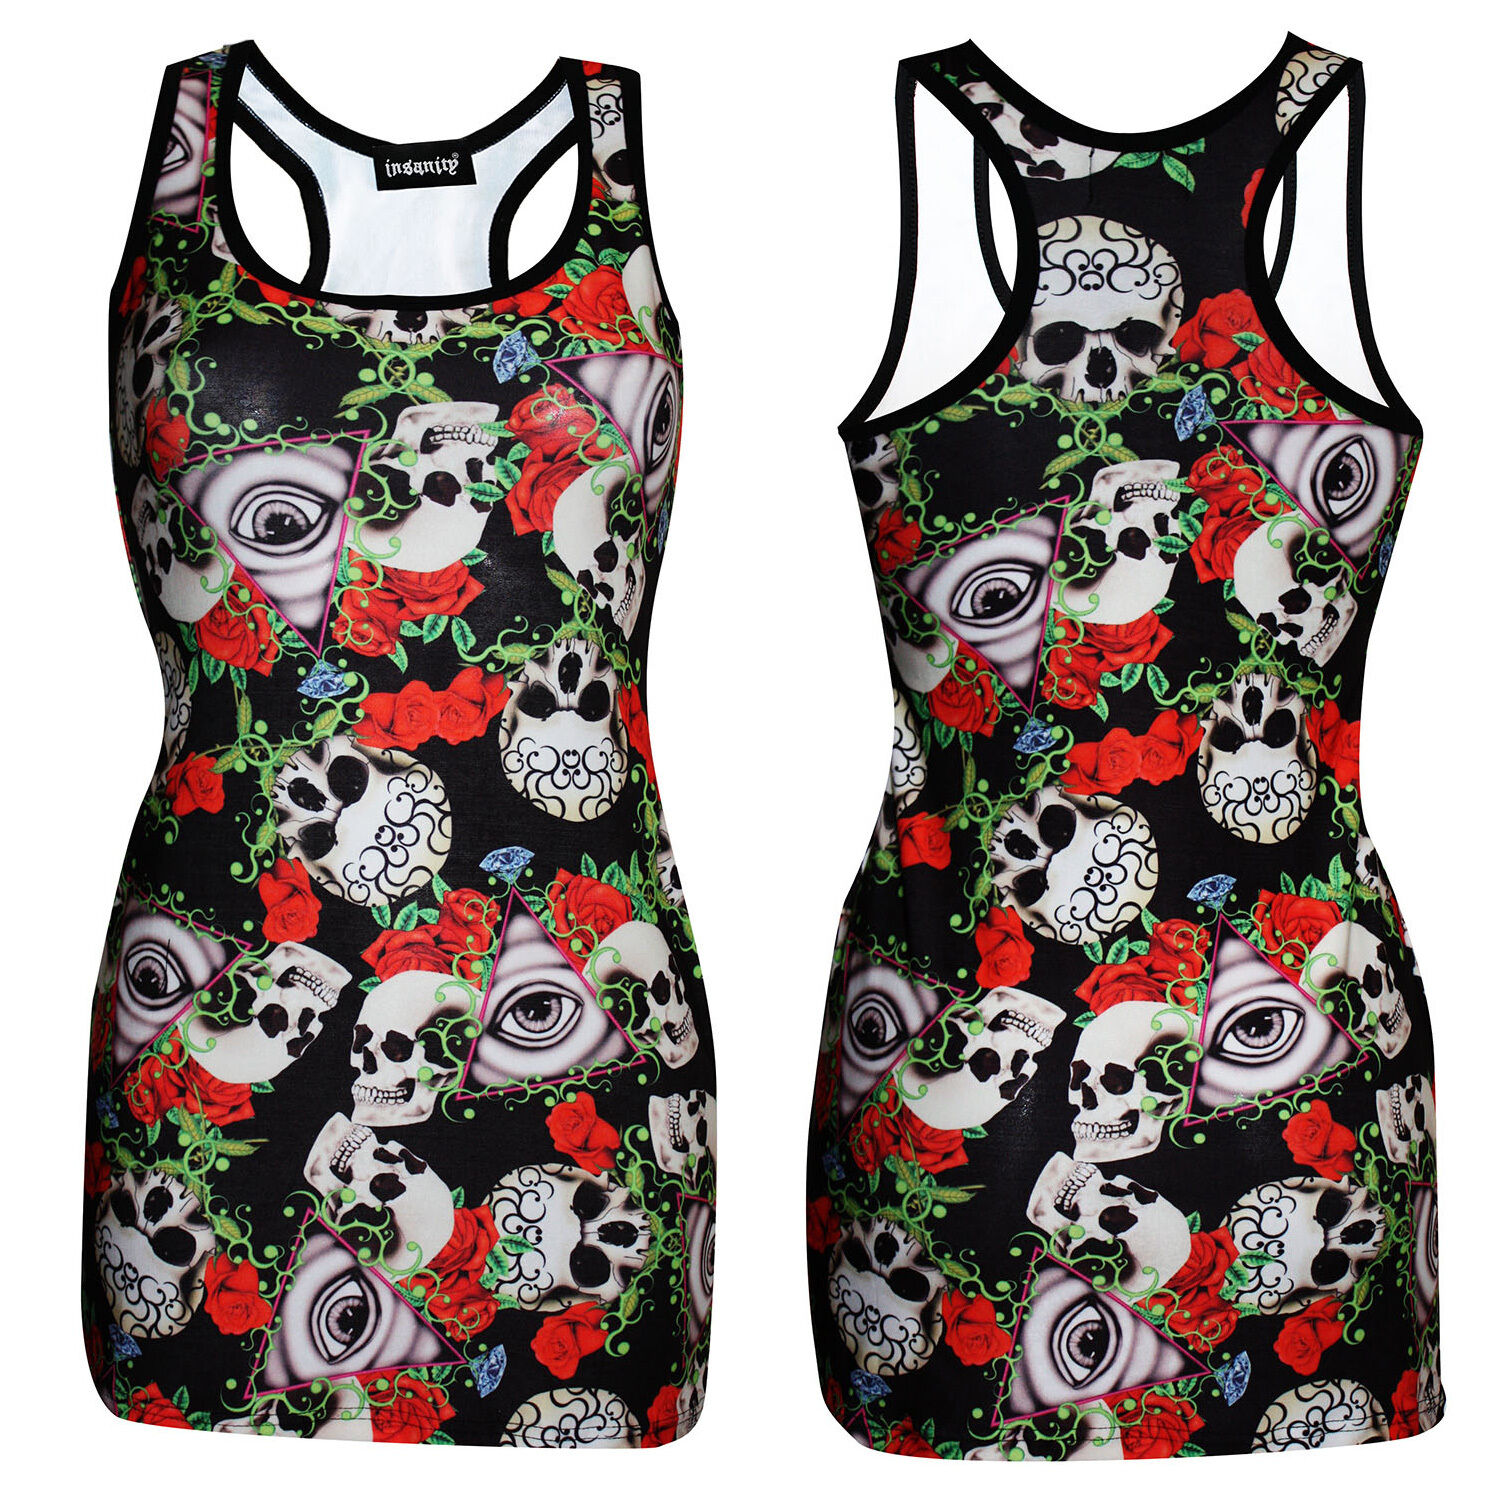 NEW LADI ES SNAKE SKULL ROSE TATTOO PRINT LONG VEST TANK TOP GOTH PUNK EMO